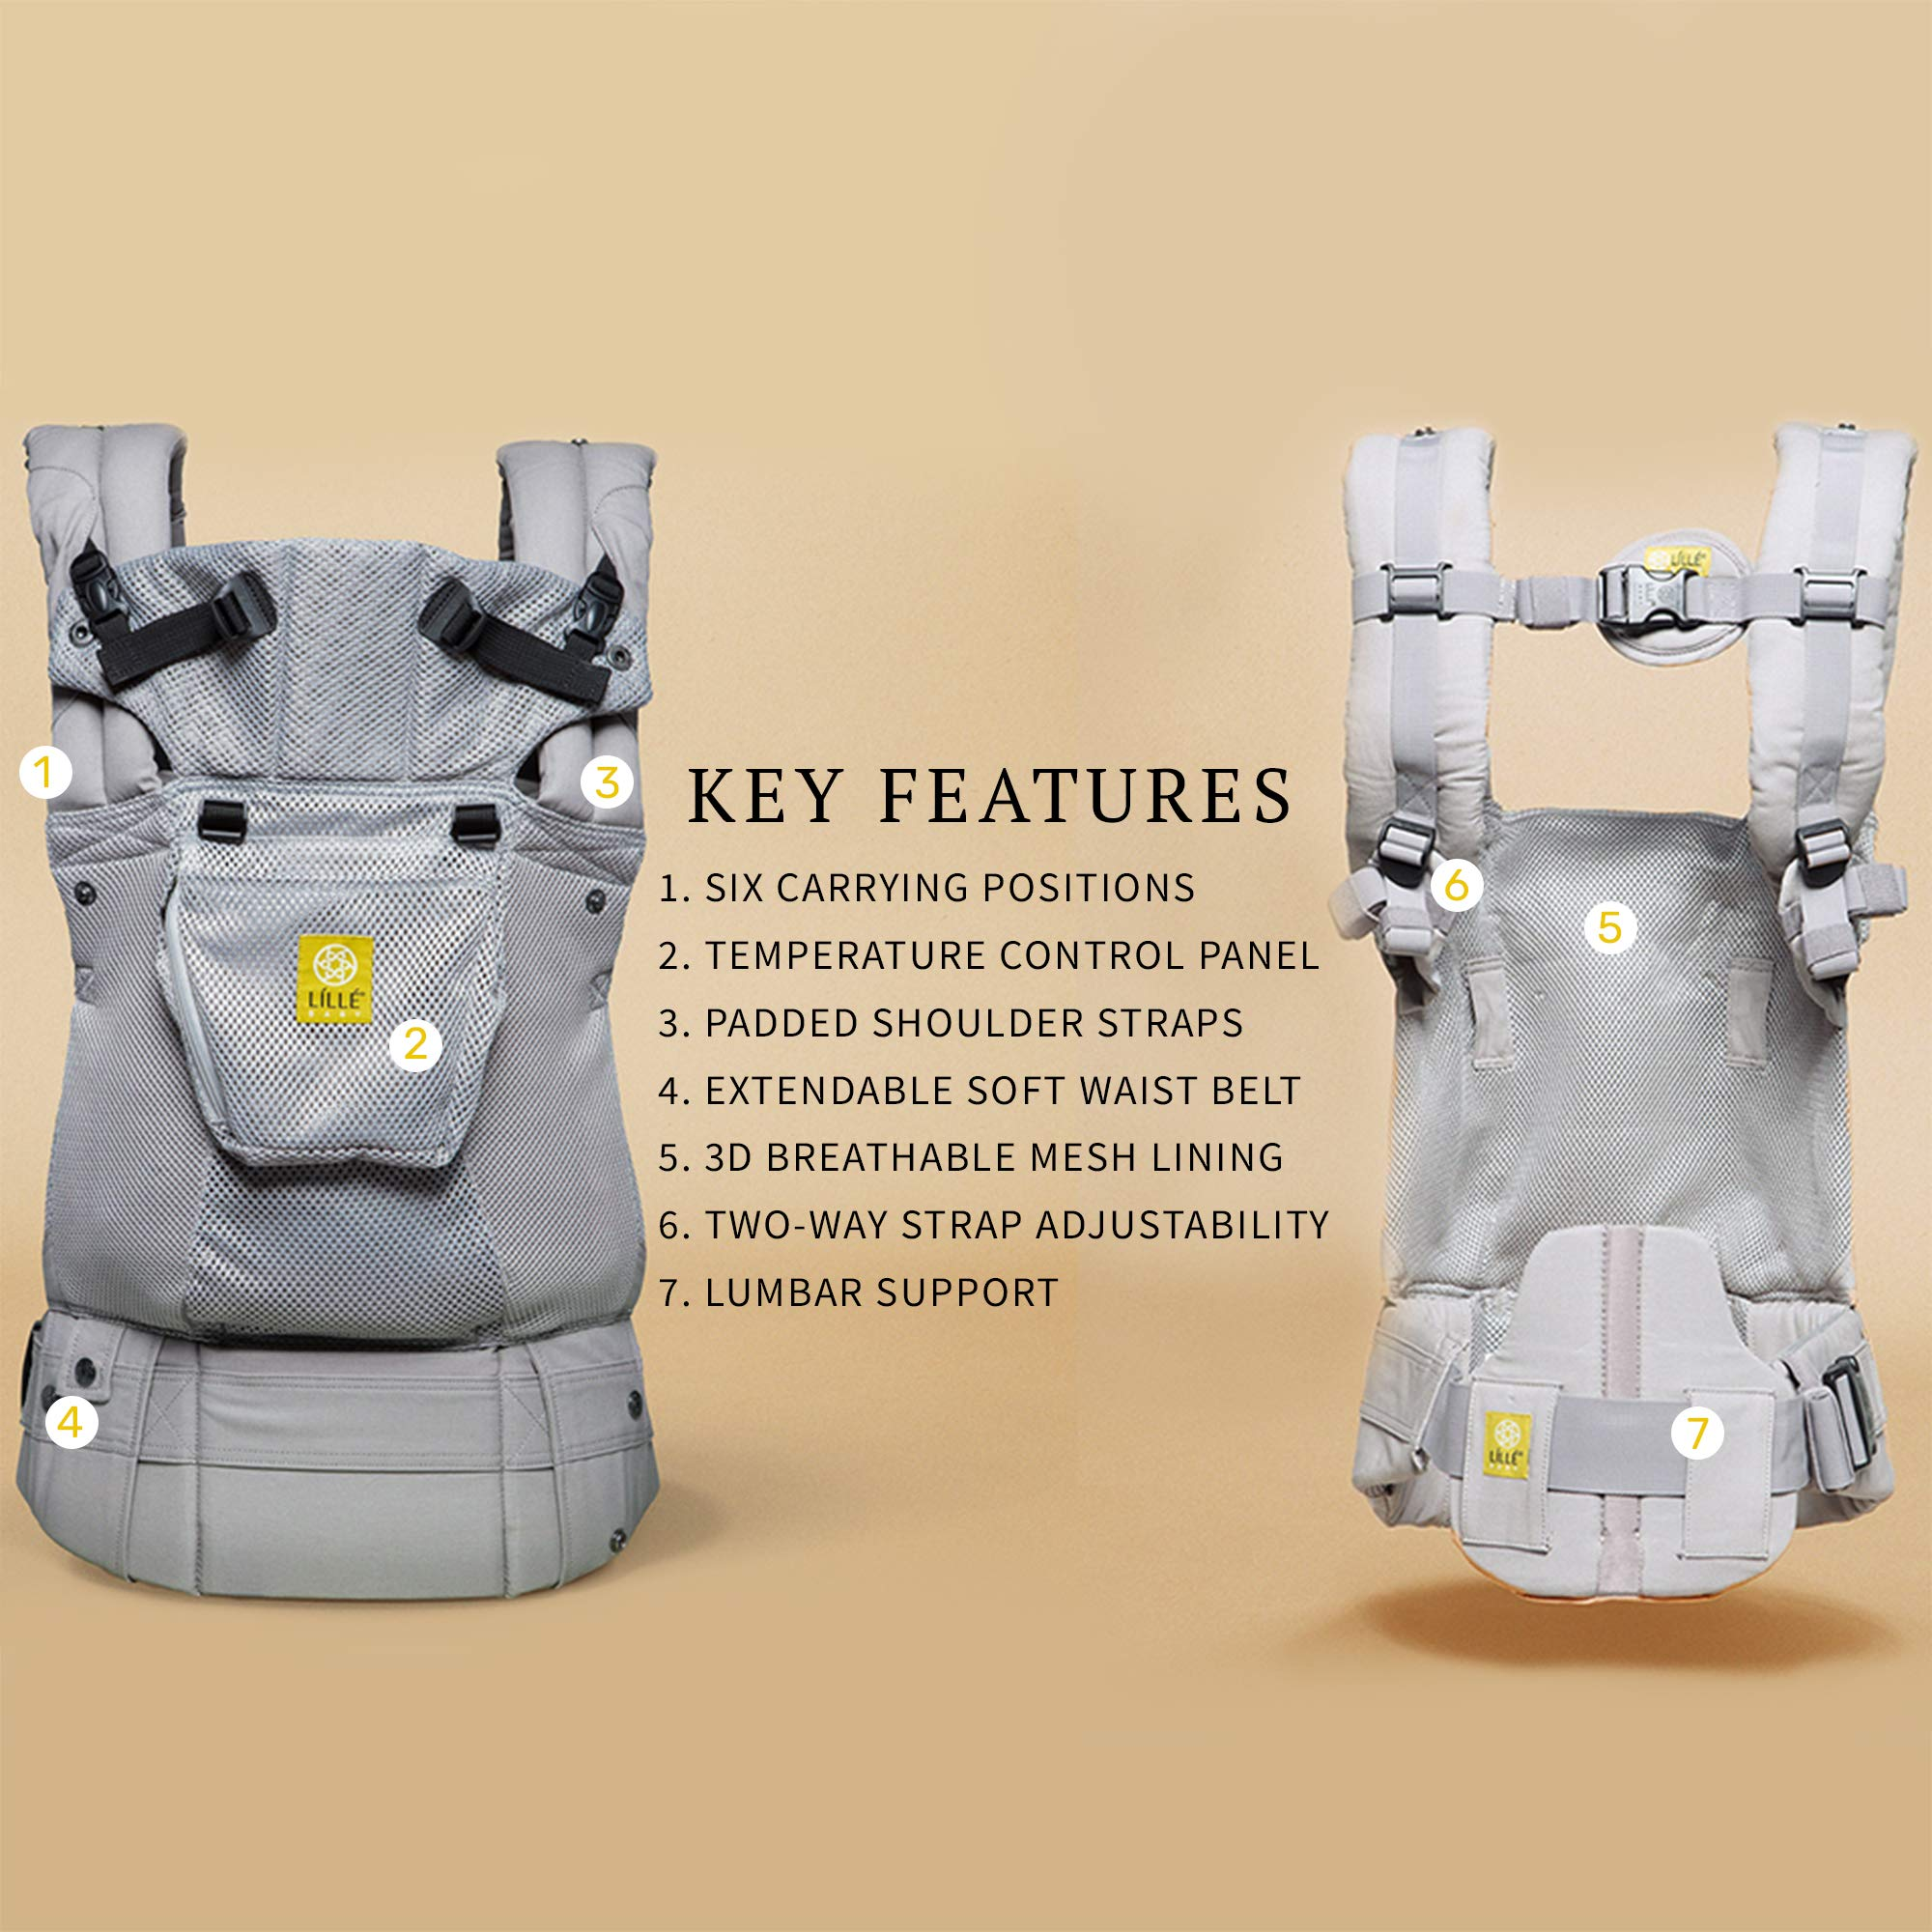 Lillebaby The Complete Airflow 360° Ergonomic Six-Position Baby & Child Carrier, Silver by LILLEbaby (Image #3)